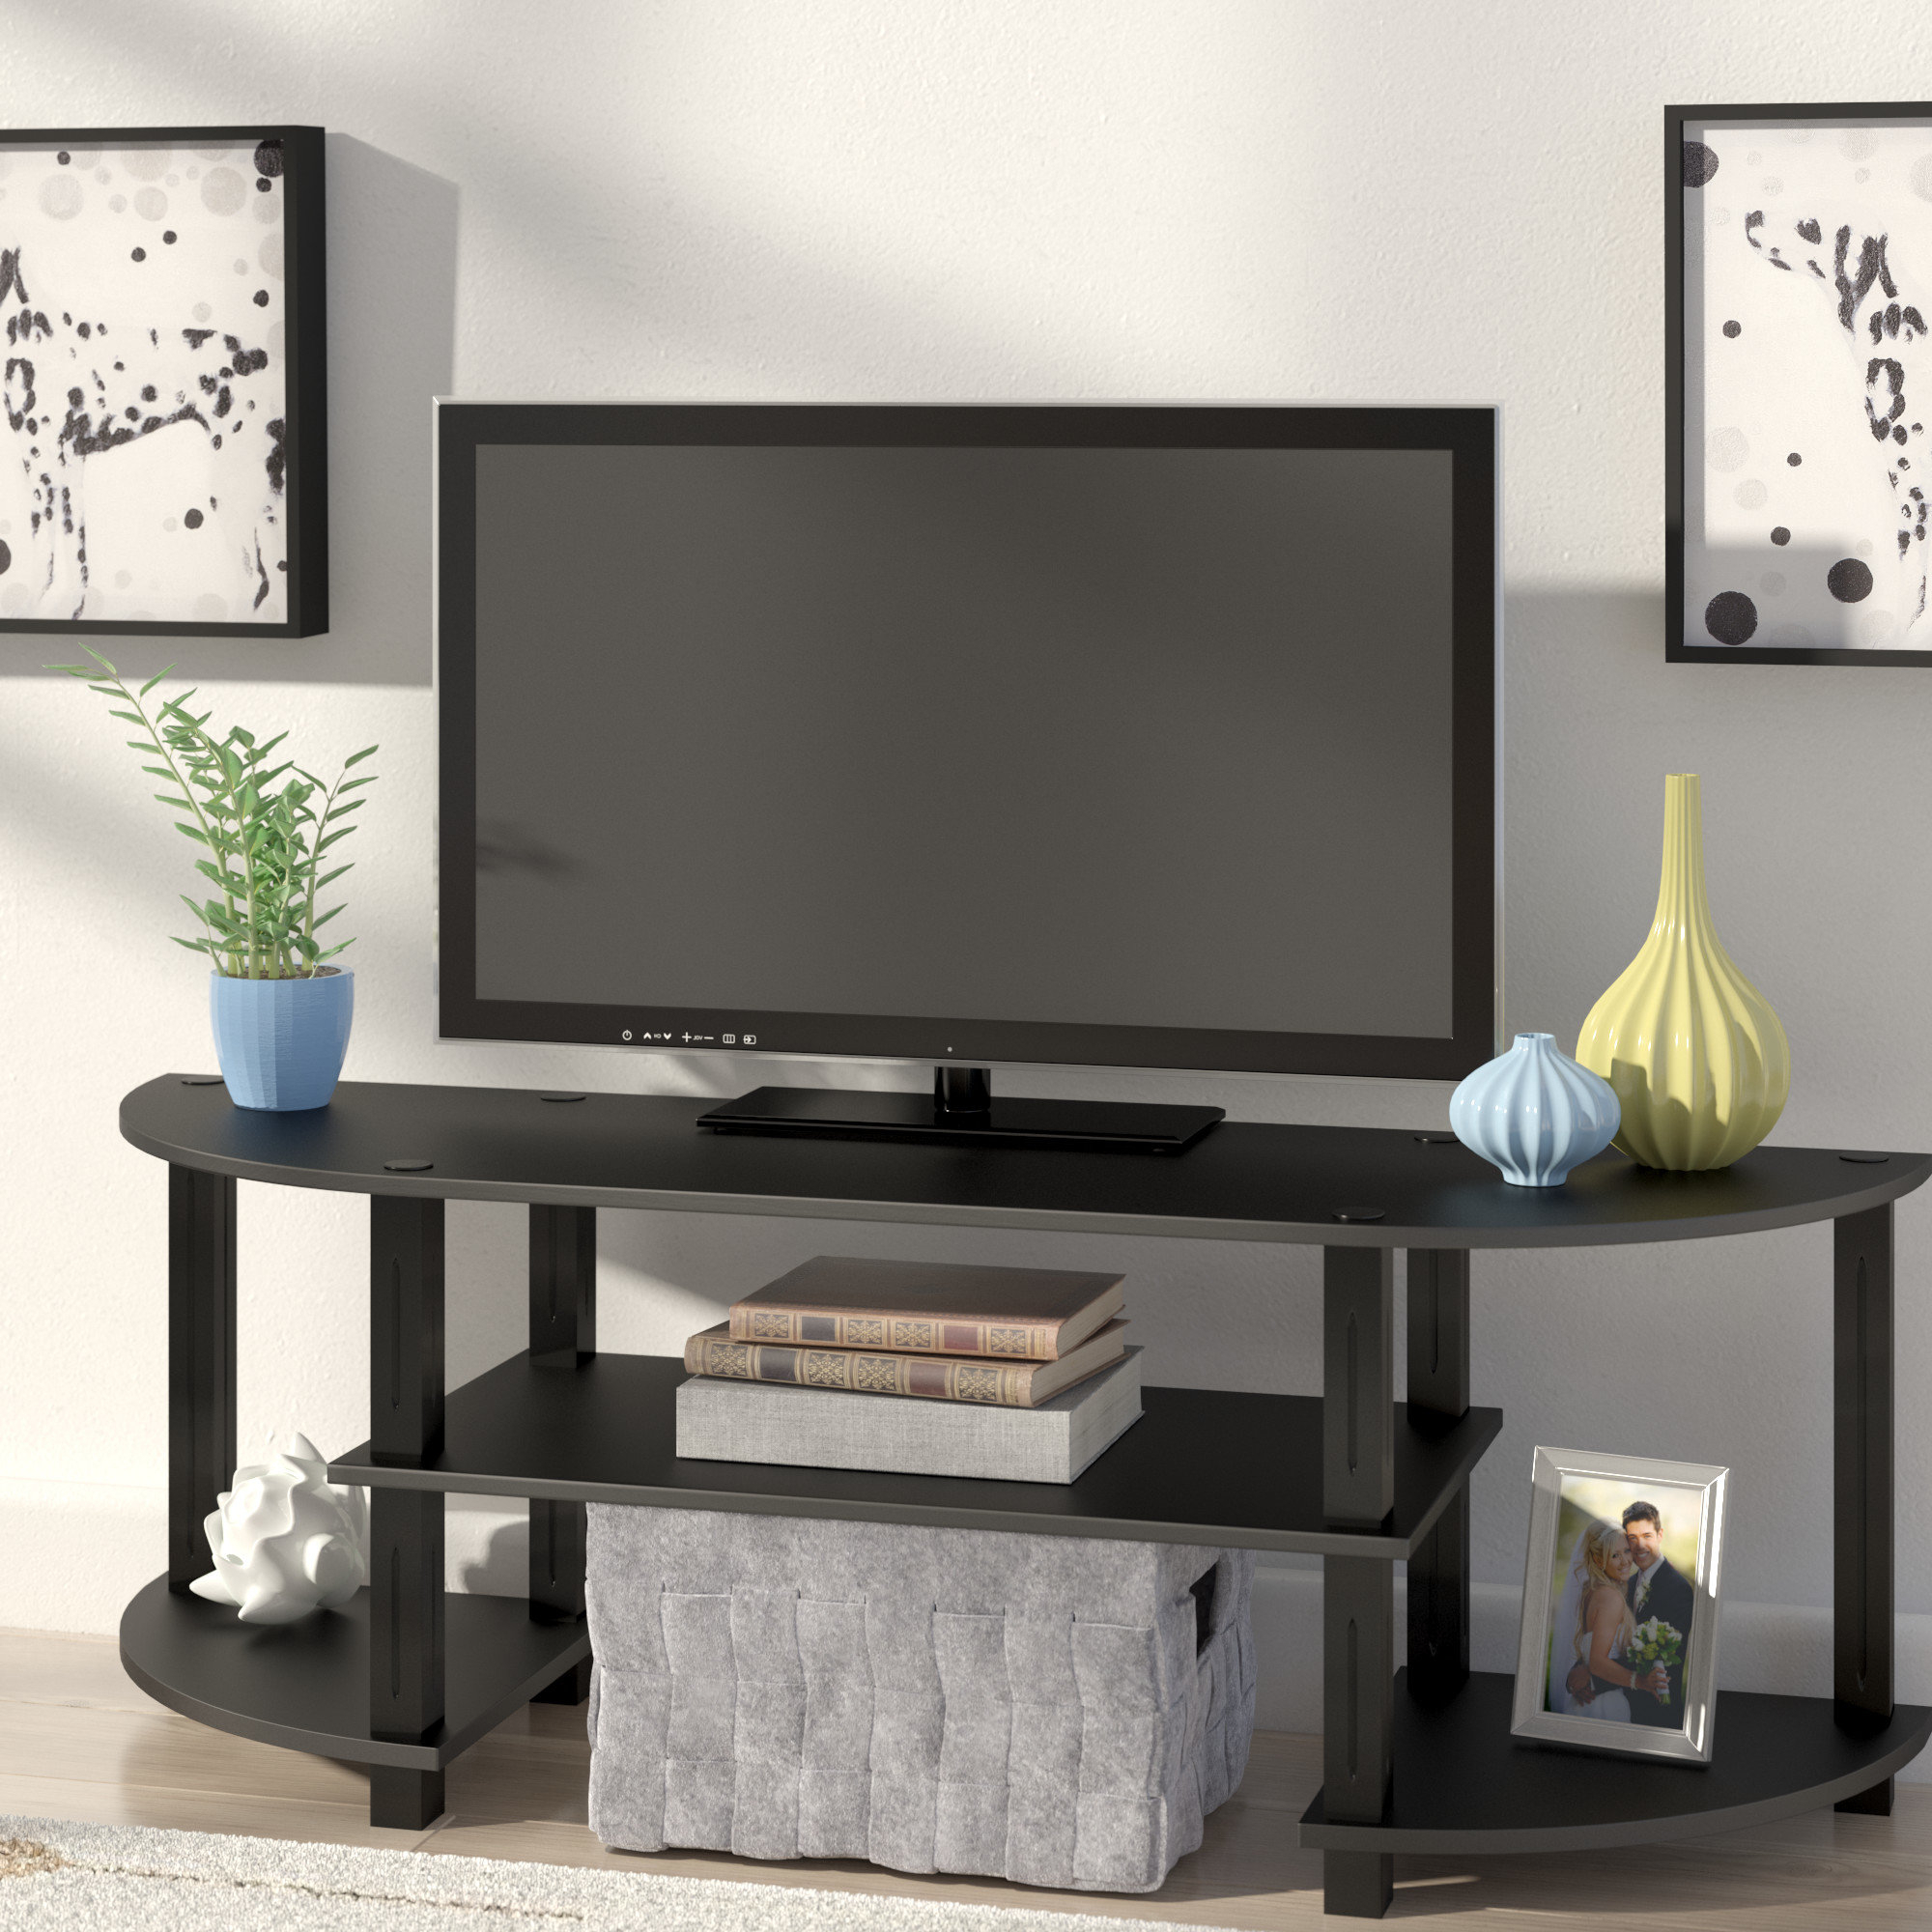 Best And Newest Child Proof Tv Stand (View 4 of 20)